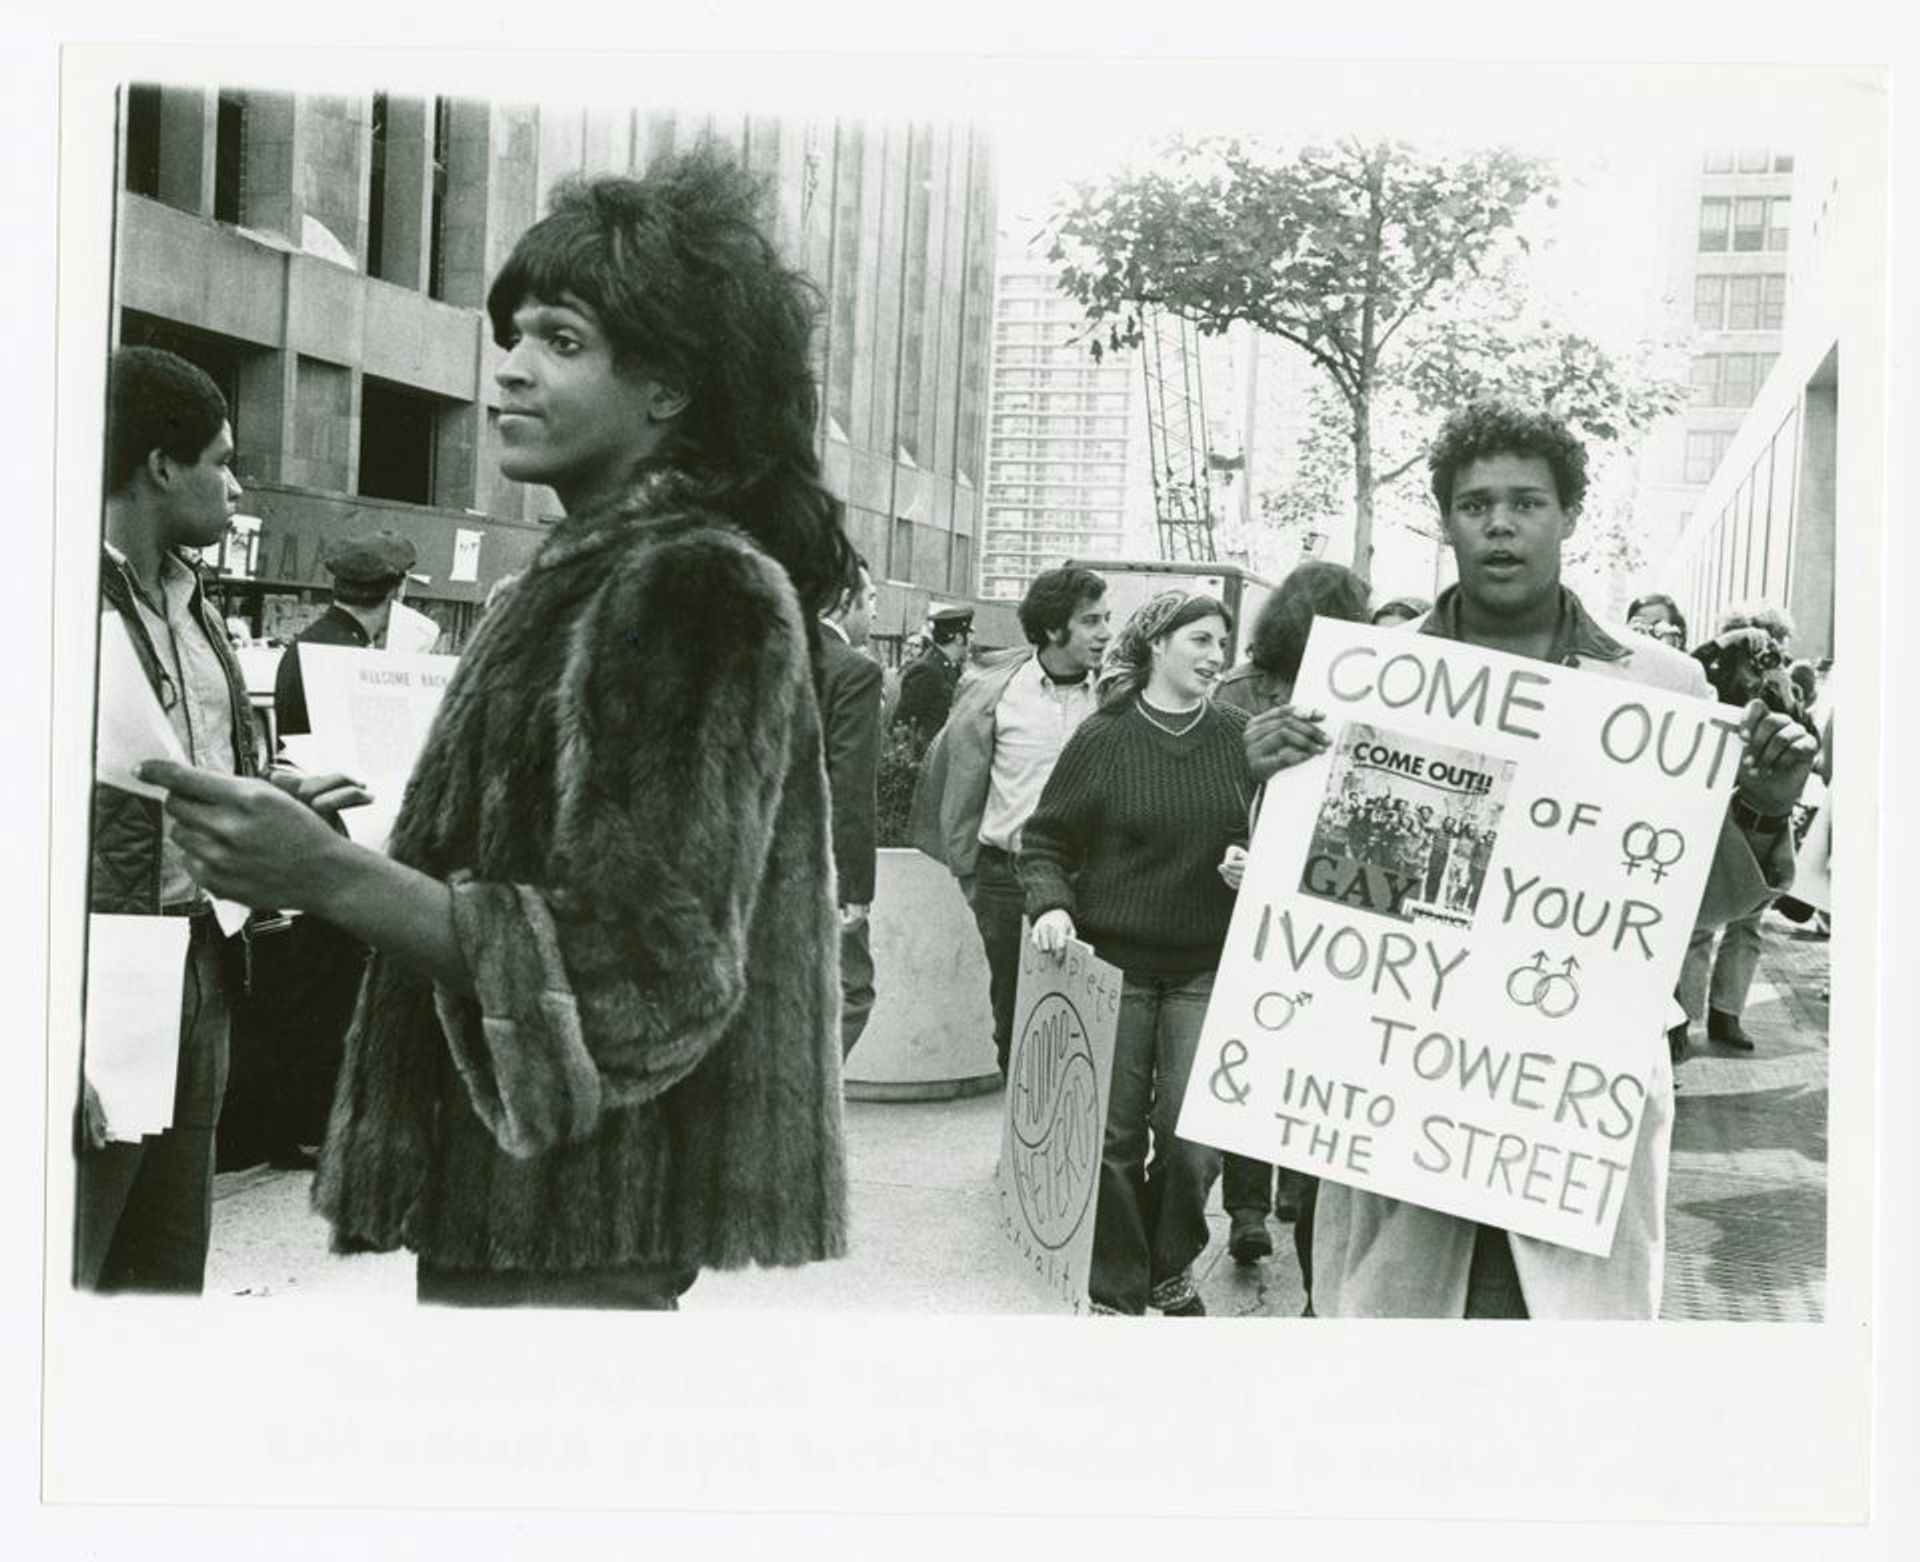 Untitled, around 1970 (Marsha P. Johnson hands out flyers in support of gay students at NYU). The image features in the exhibition Art After Stonewall, 1969-89 at New York University's Grey Art Gallery (until 20 July) and the Leslie-Lohman Museum of Gay and Lesbian Art (until 21 July). © Diana Davies / New York Public Library / Art Resource, NY.